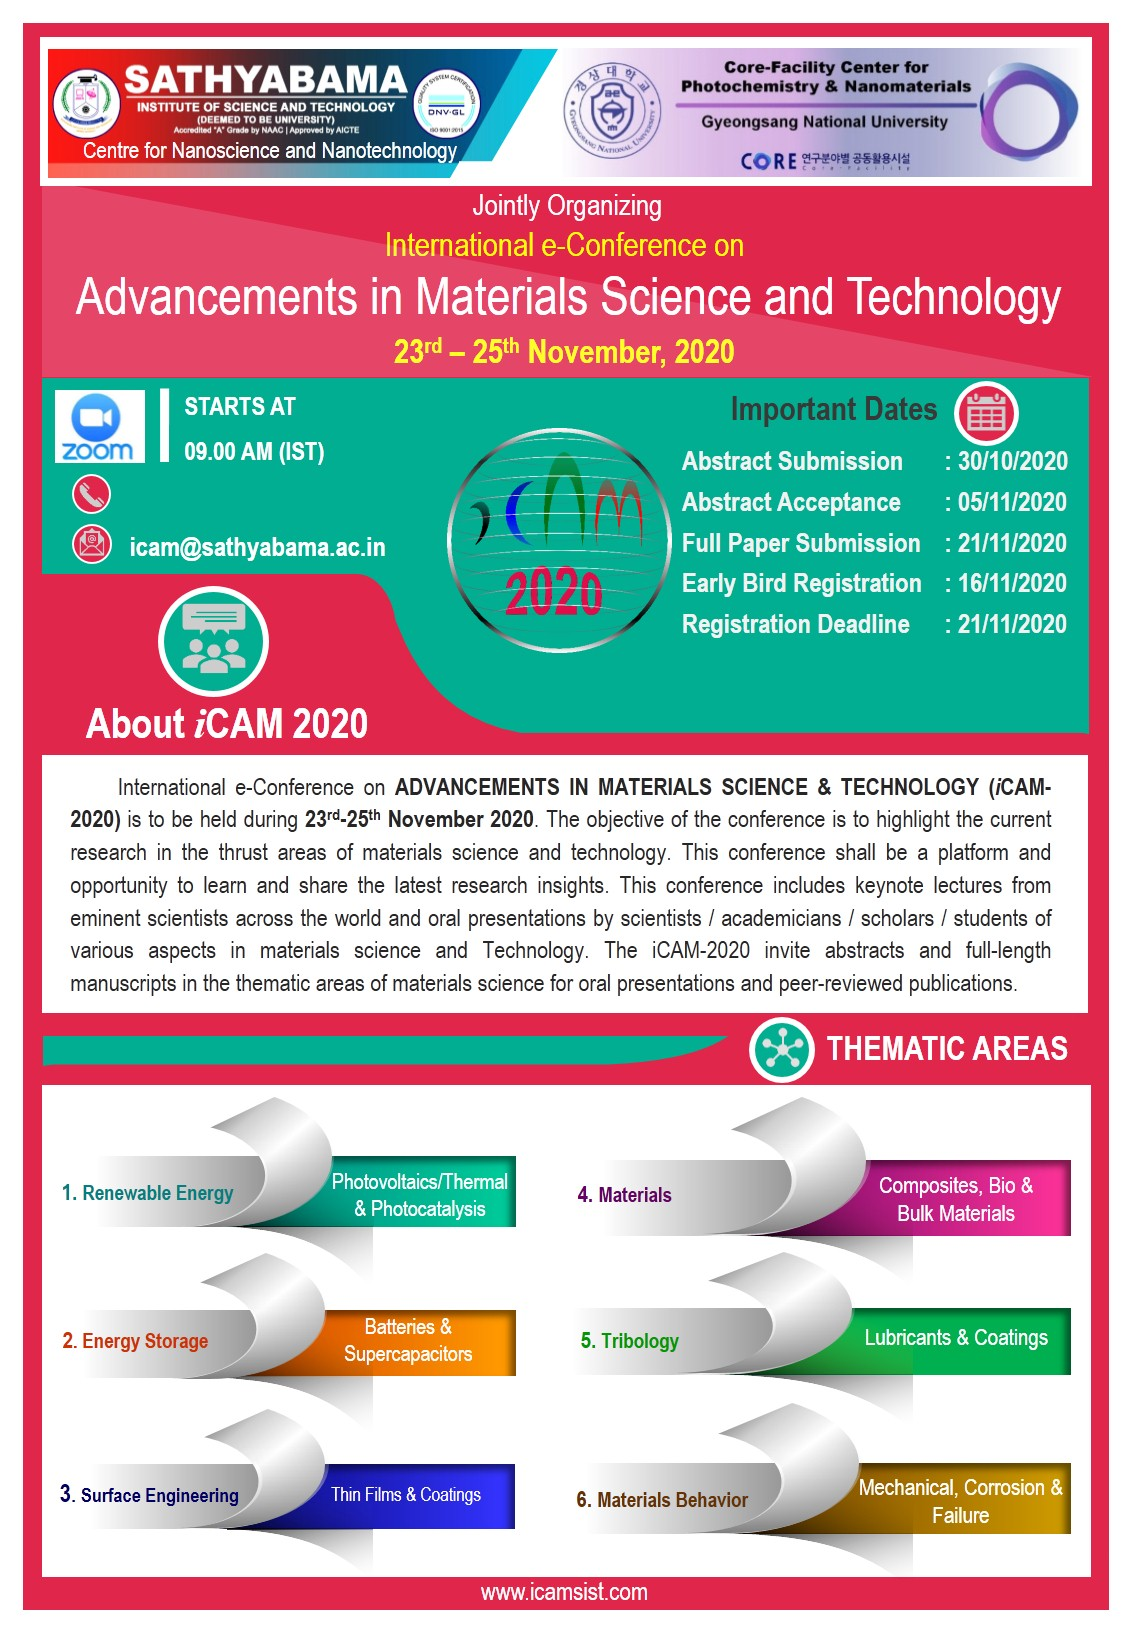 International Conference on Advancements in Materials Science and Technology iCAM 2020